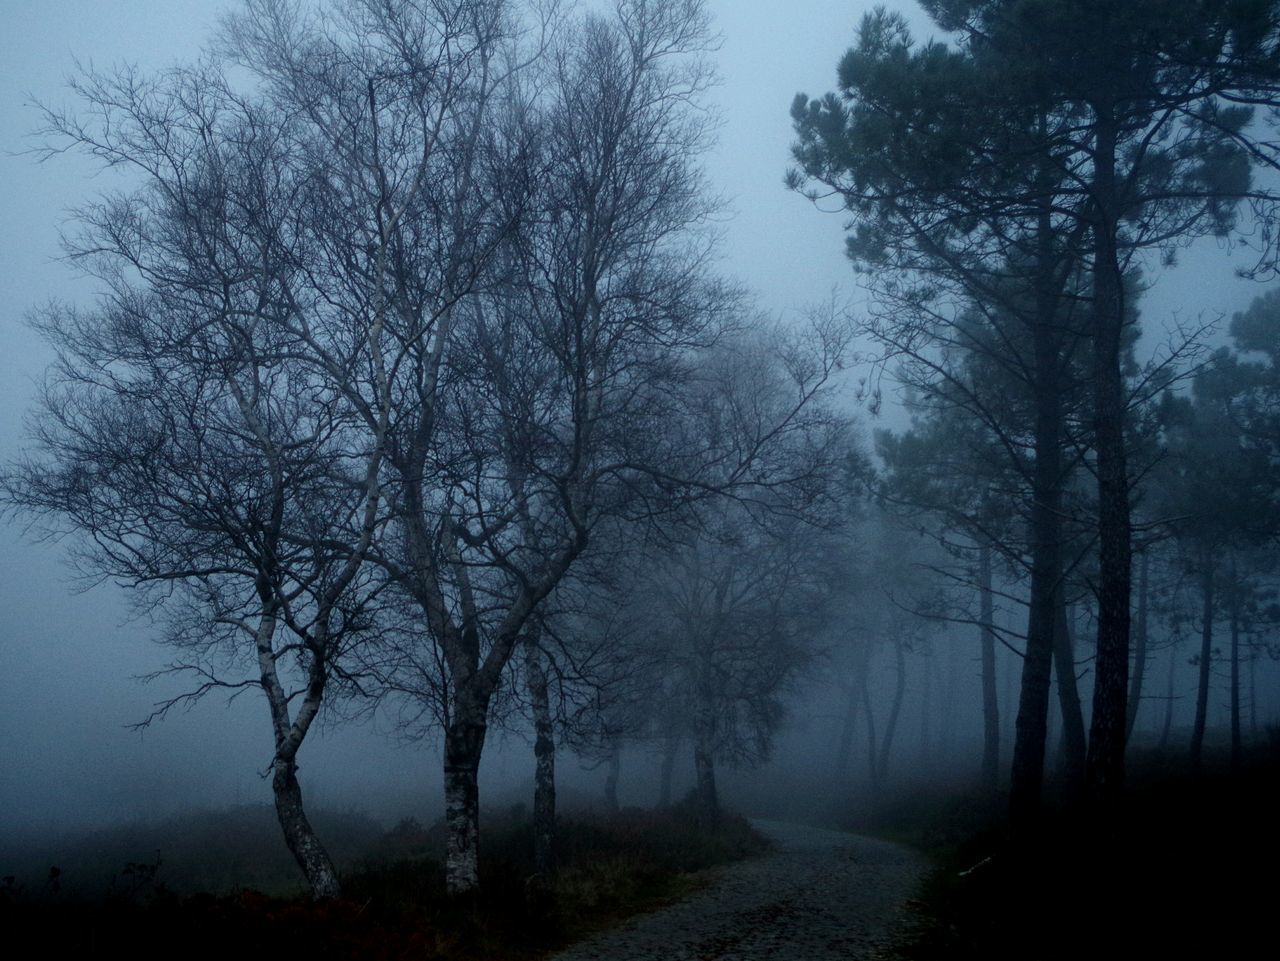 tree, nature, fog, tranquility, bare tree, tranquil scene, no people, autumn, beauty in nature, mist, branch, forest, landscape, scenics, outdoors, hazy, day, sky